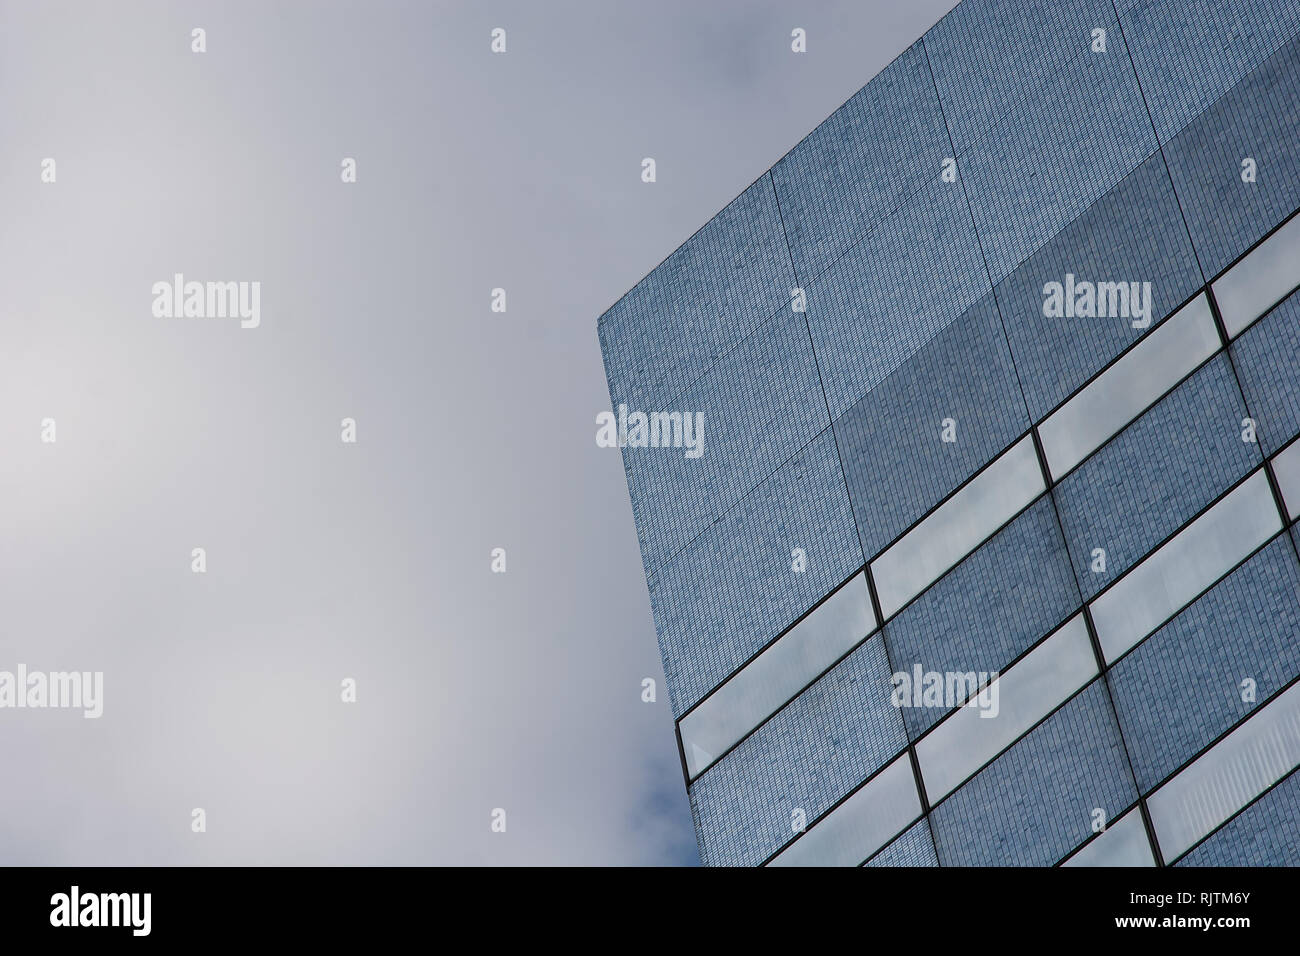 An abstract image of an office building against a cloudy sky. - Stock Image